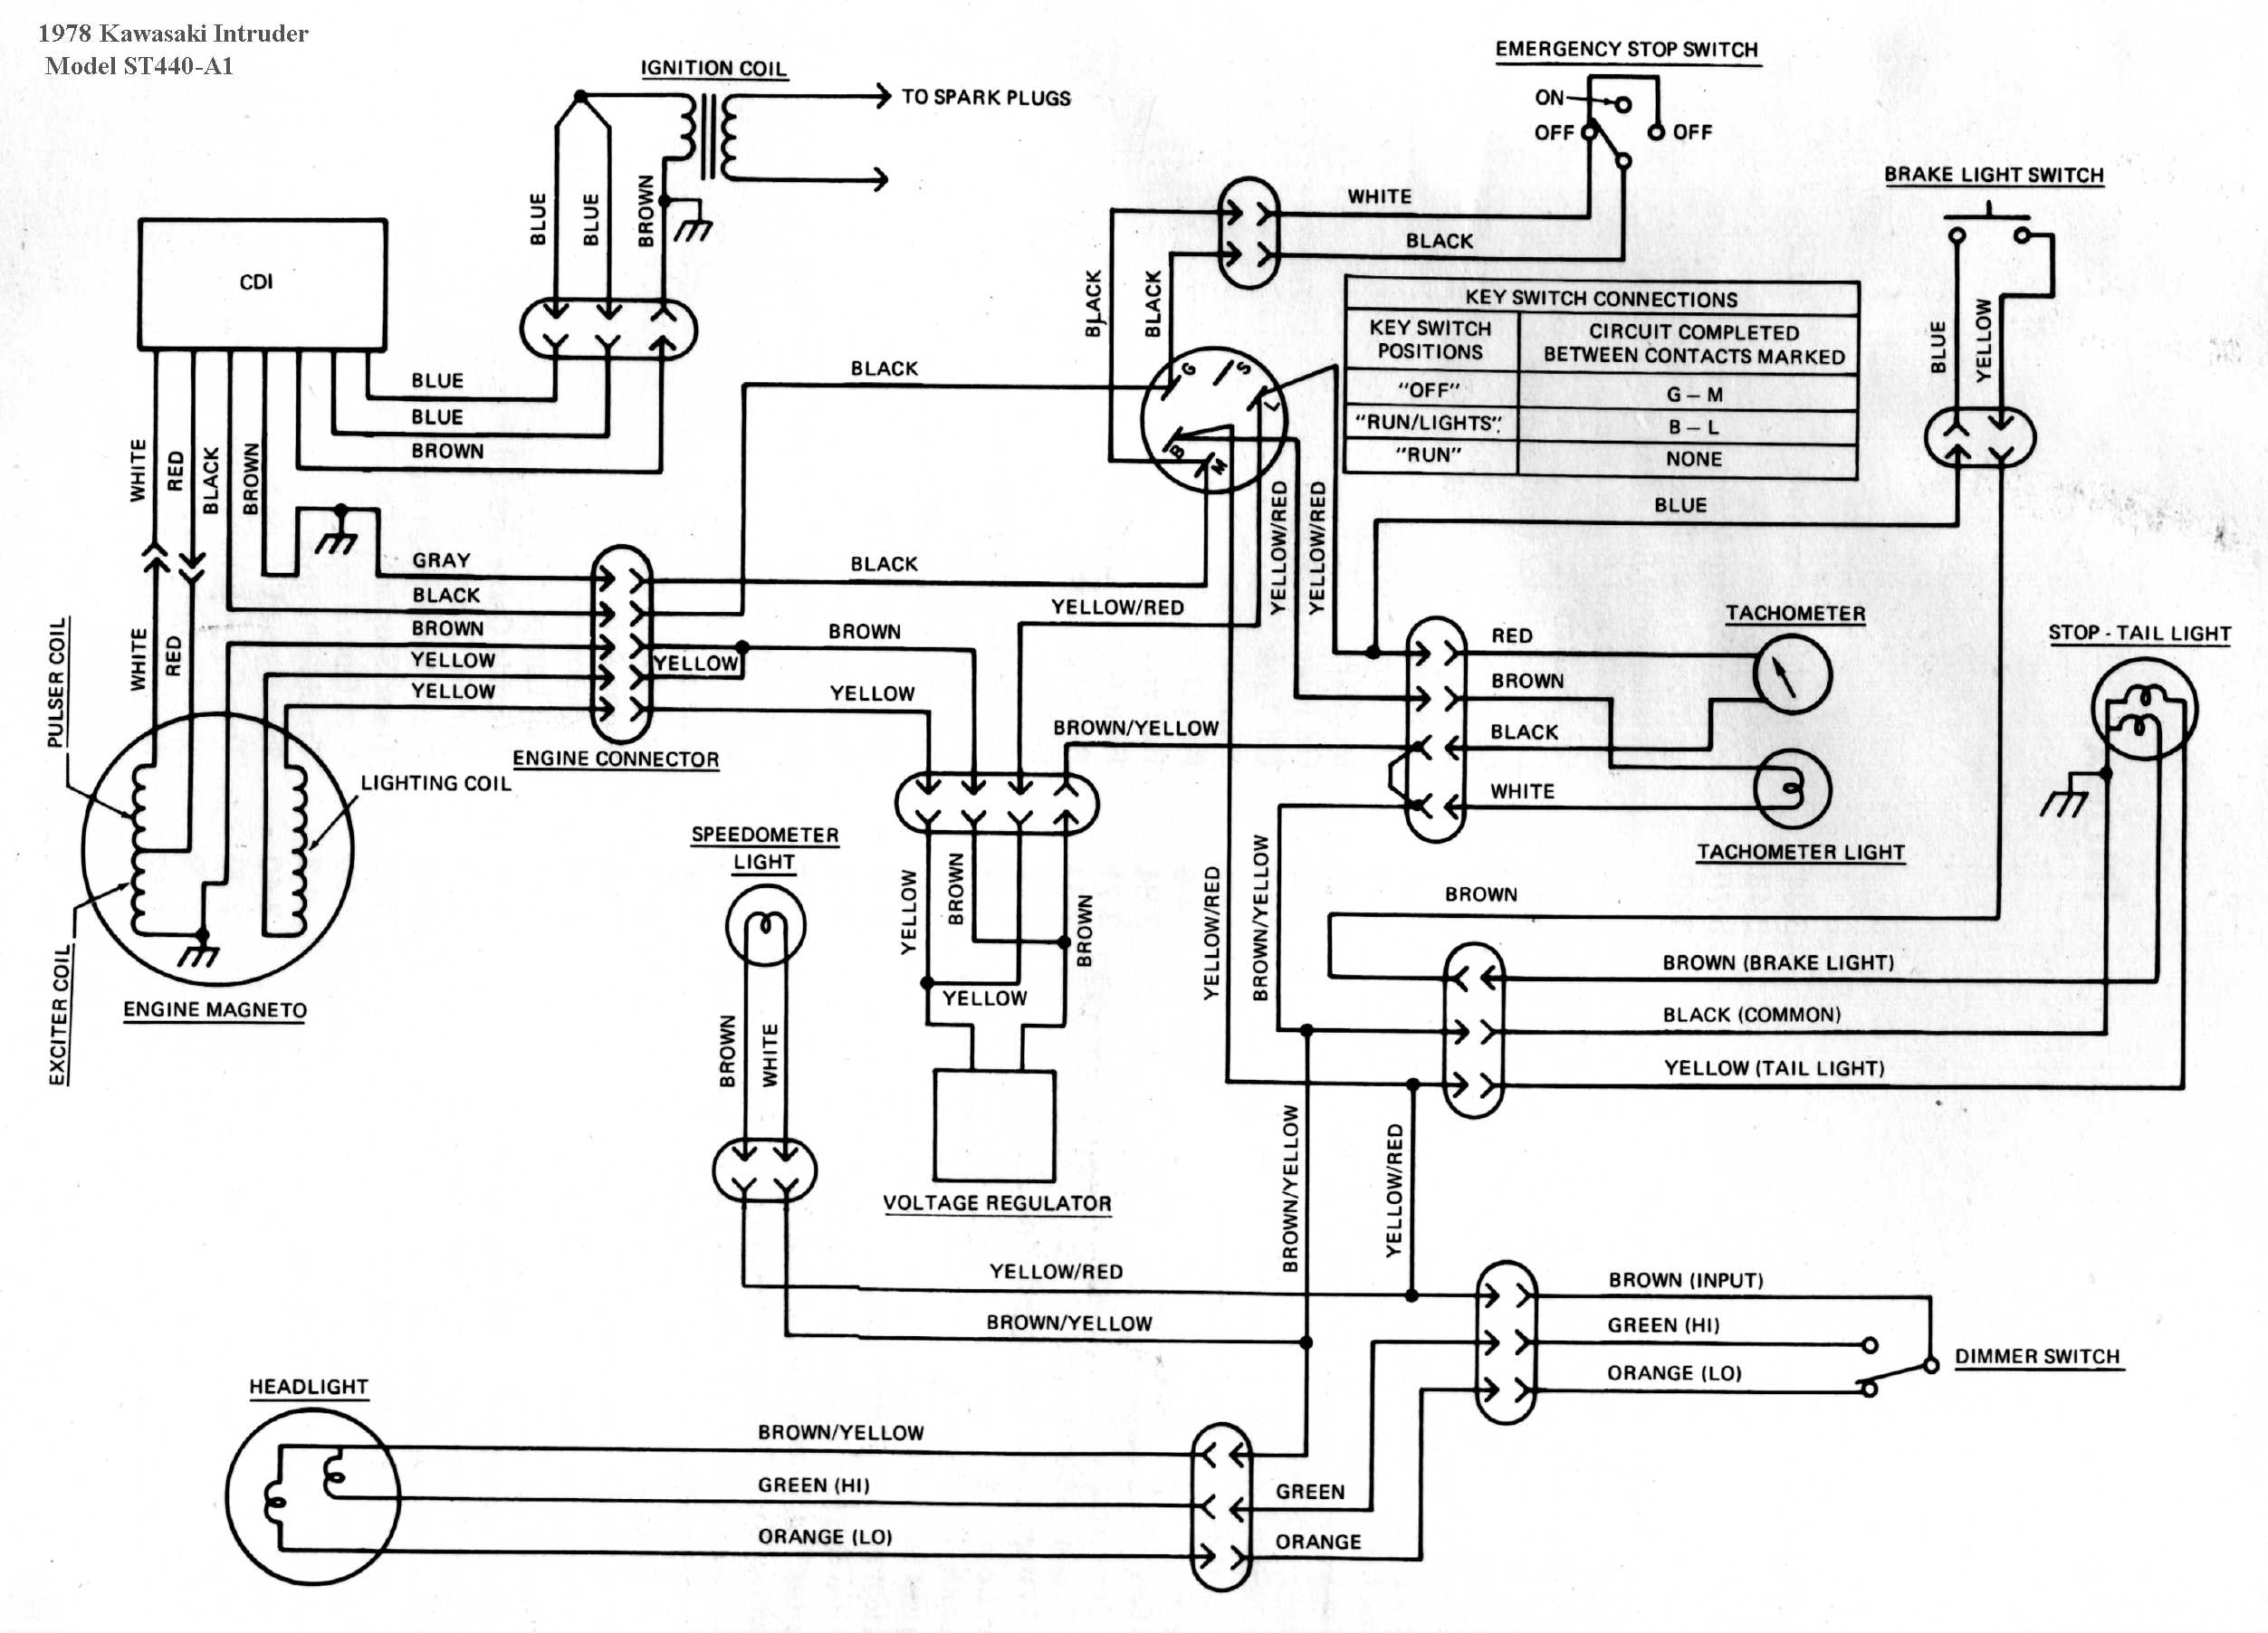 Srx 700 Wiring Diagram Another Blog About 2001 Yamaha Blaster Snowmobile Diagrams